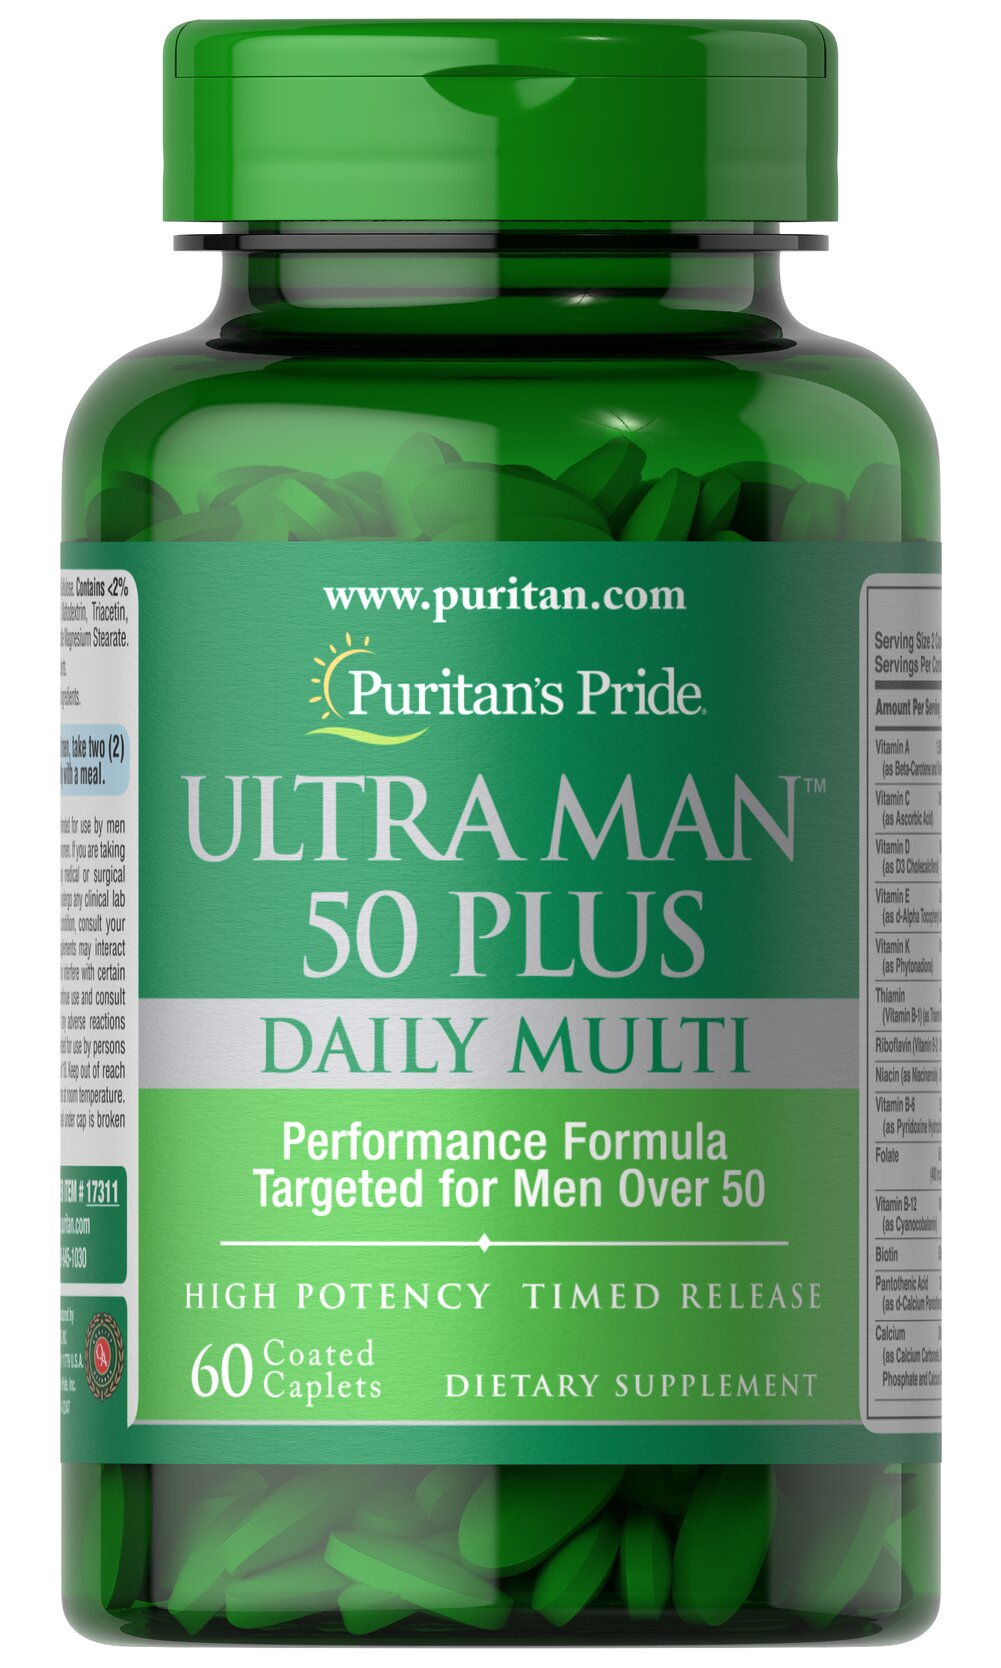 Ultra Vita Man™ 50 Plus • High performance multi with over 50 important nutrients for men's health**<br />• Created especially for men over 50<br />• Unlike other multis, Ultra Vita Man 50 Plus is enhanced with vital nutrients not commonly found in the diet.<br />• Just two coated caplets a day<br />• Features Zinc, an important mineral that contributes to normal semen production and sexual health** 60 Caplets  $10.44